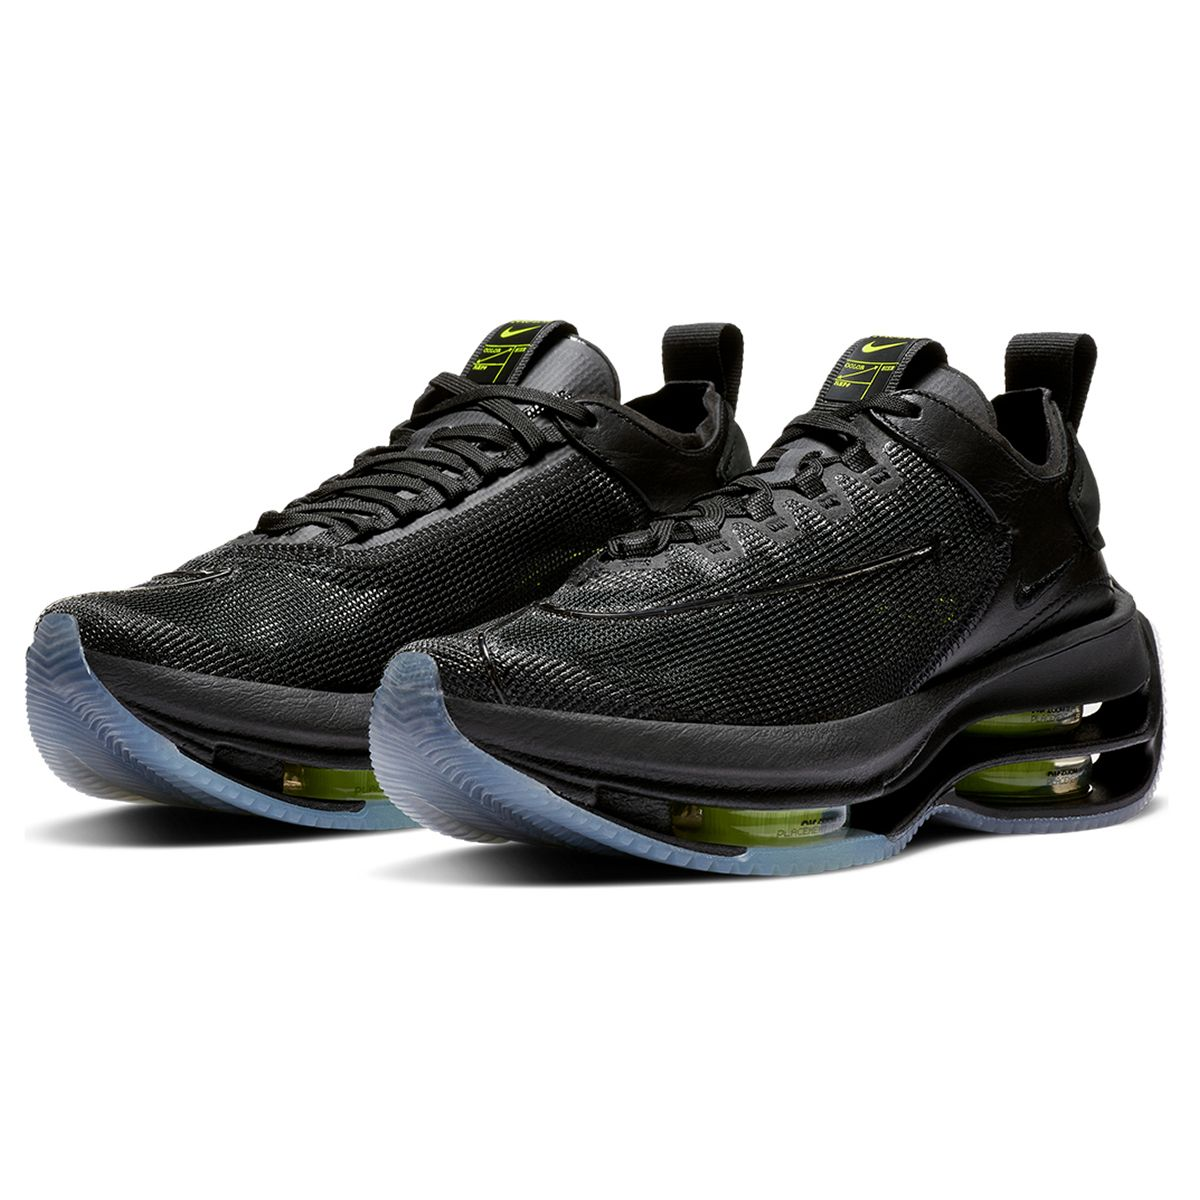 W NIKE ZOOM DOUBLE STACKED / 001 : BLACK/VOLT-BLACK